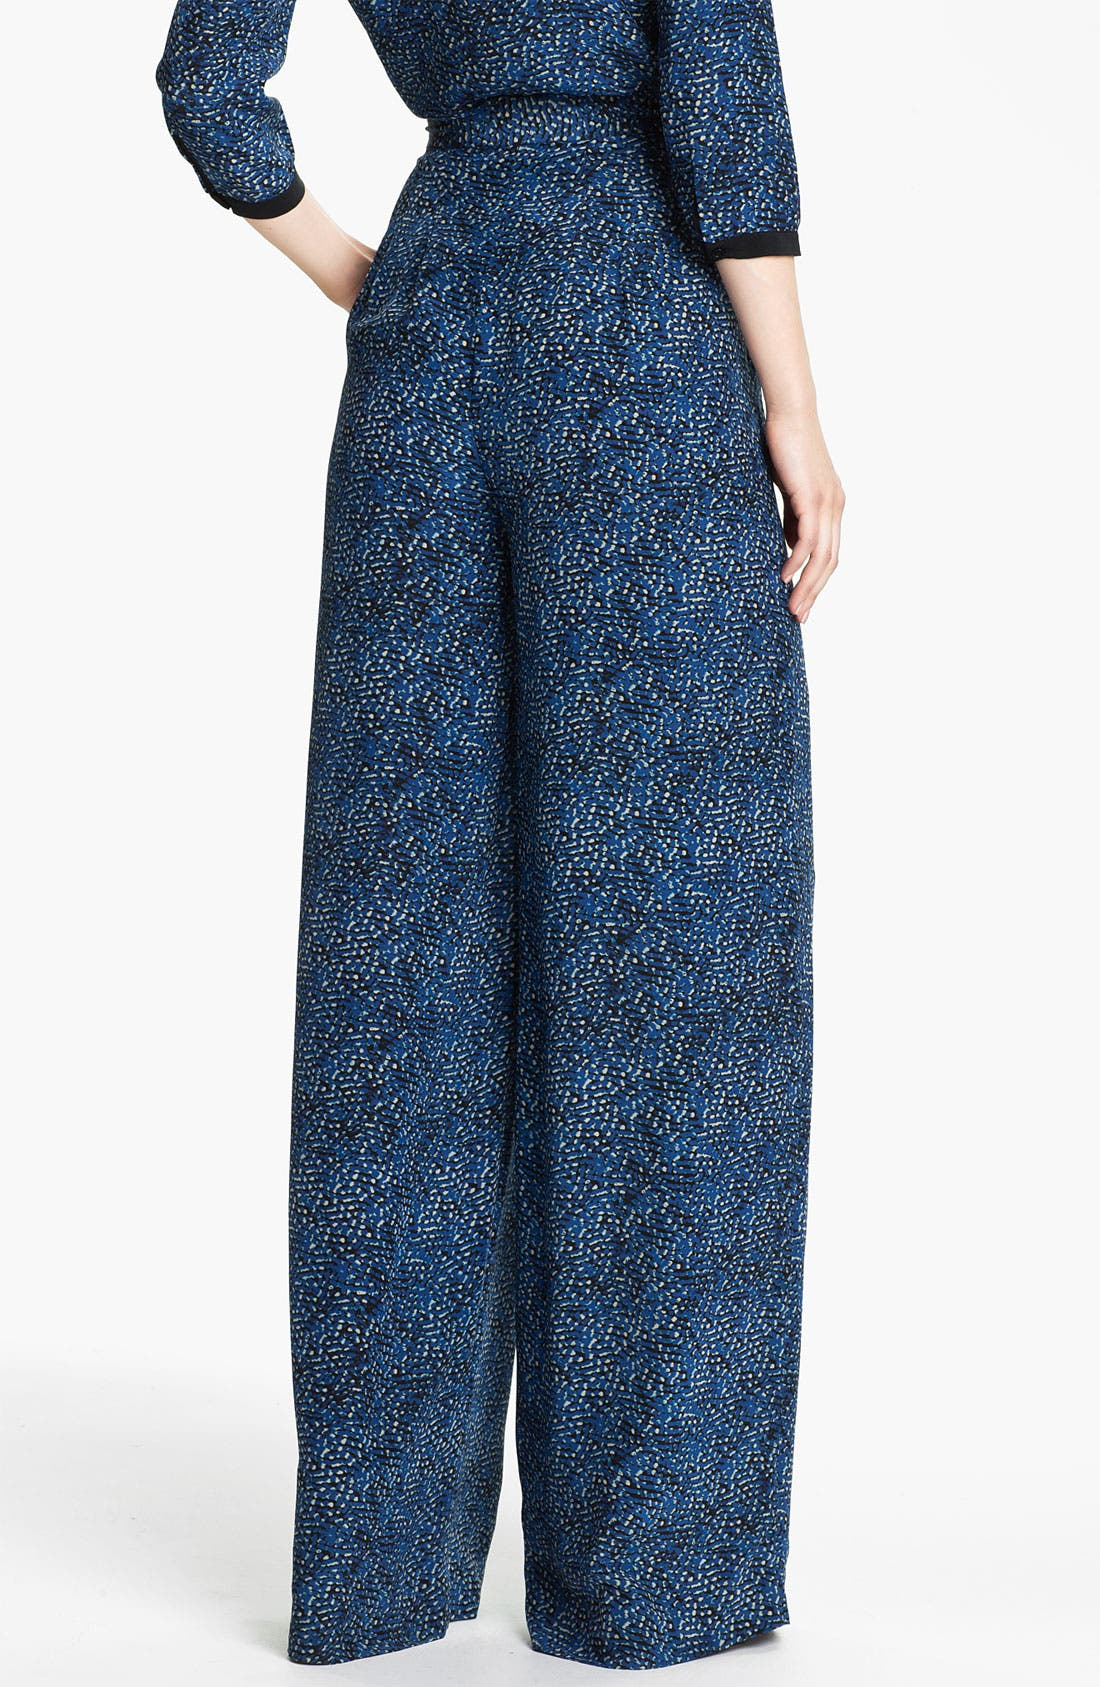 Alternate Image 2  - Rachel Zoe 'Tori' Abstract Dot Print Silk Pants